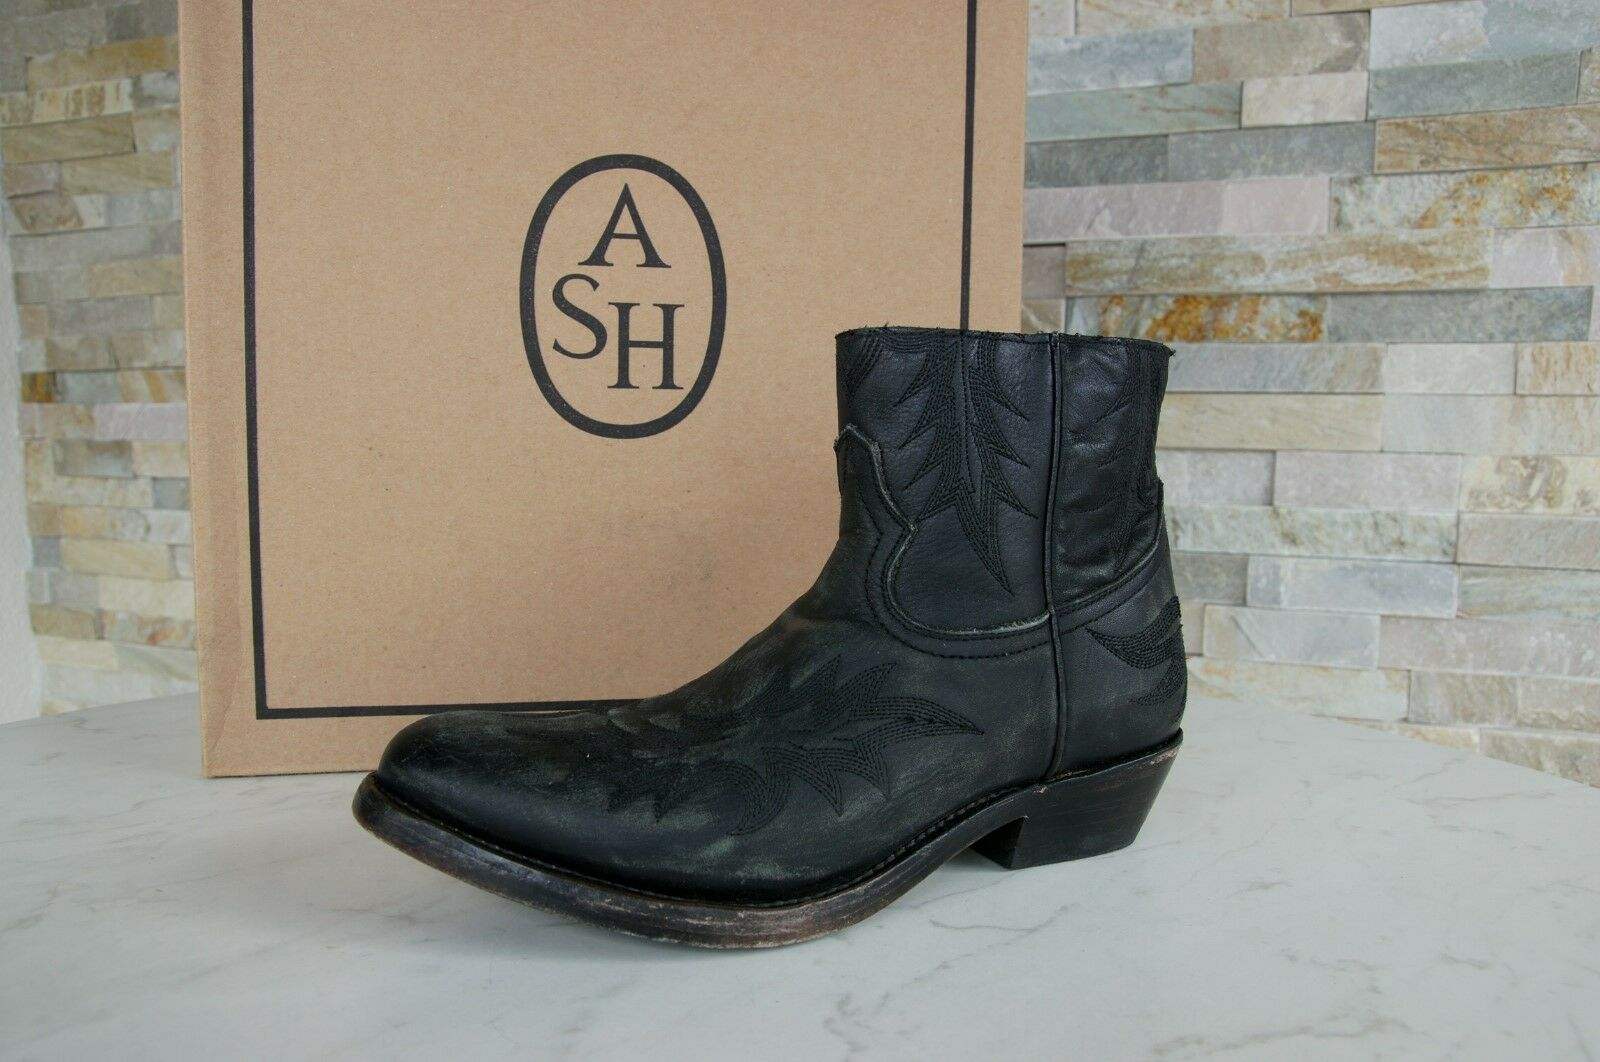 Ash Size 36 Boots Shoes Ankle Boots Vintage Country Kurty Black NEW